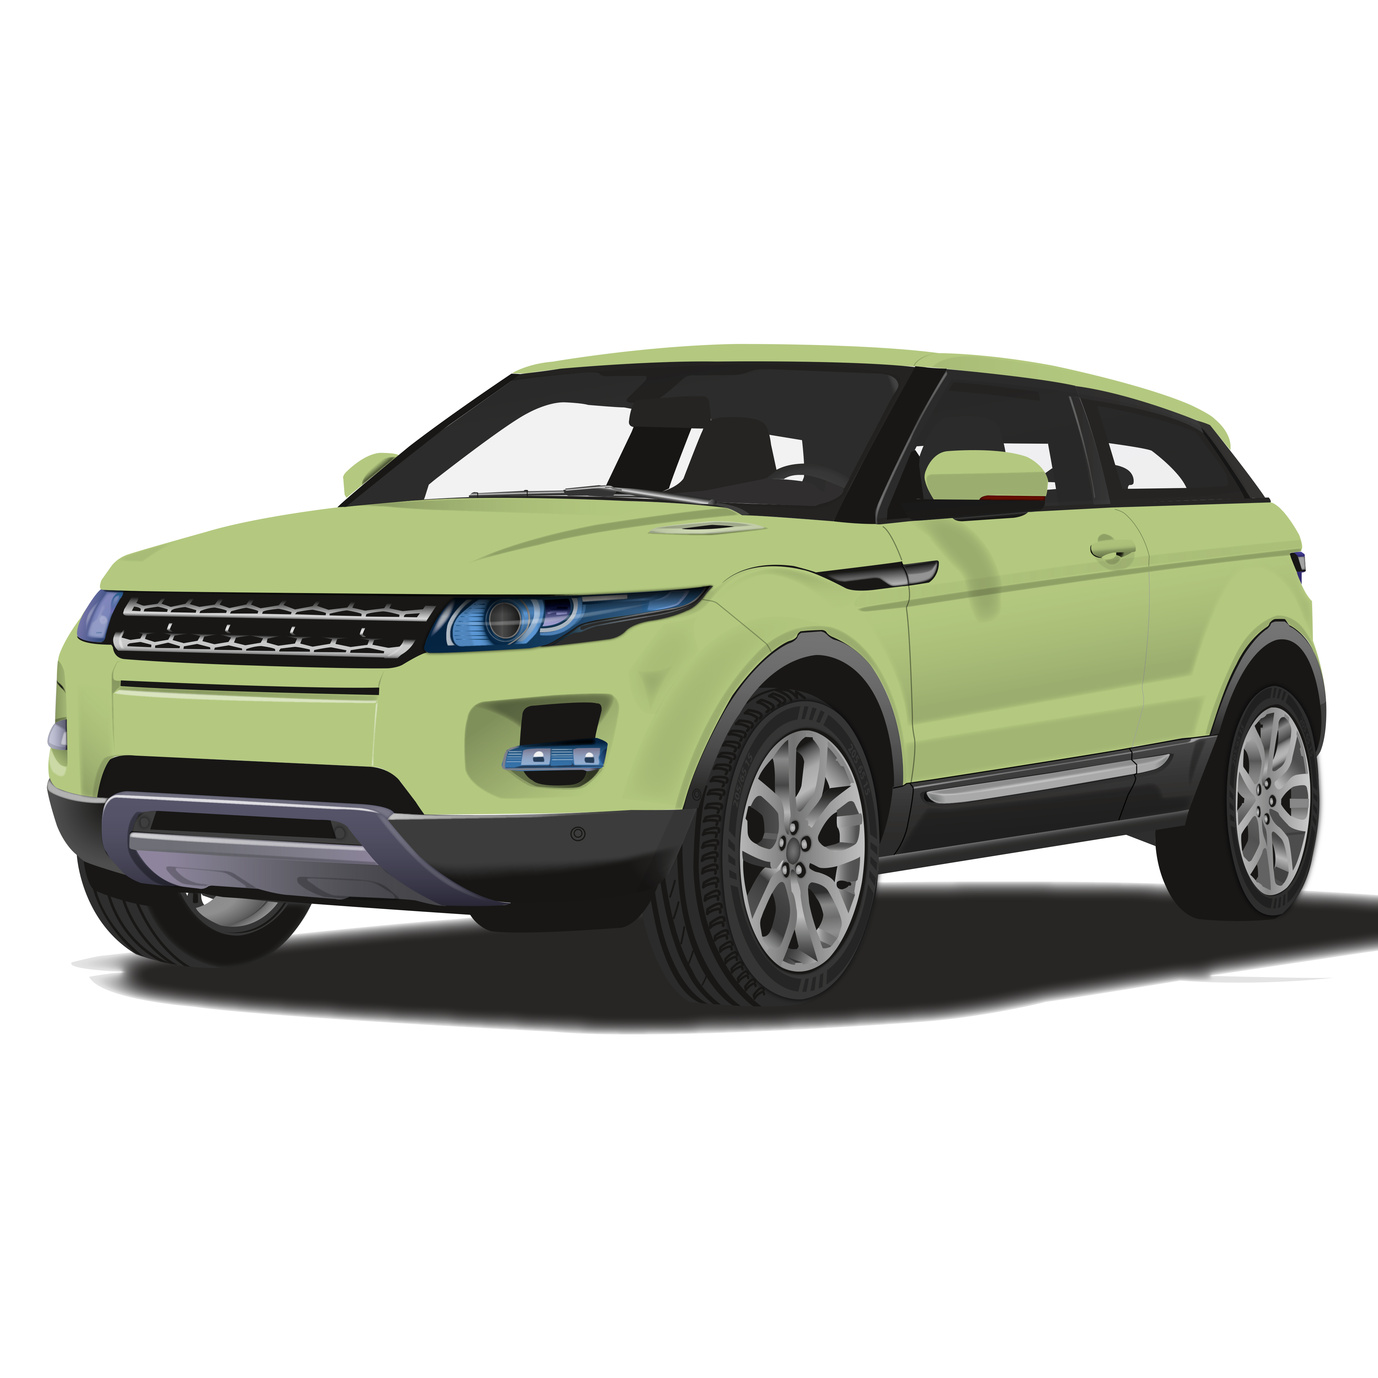 graphic of a Land Rover Evoque 4x4